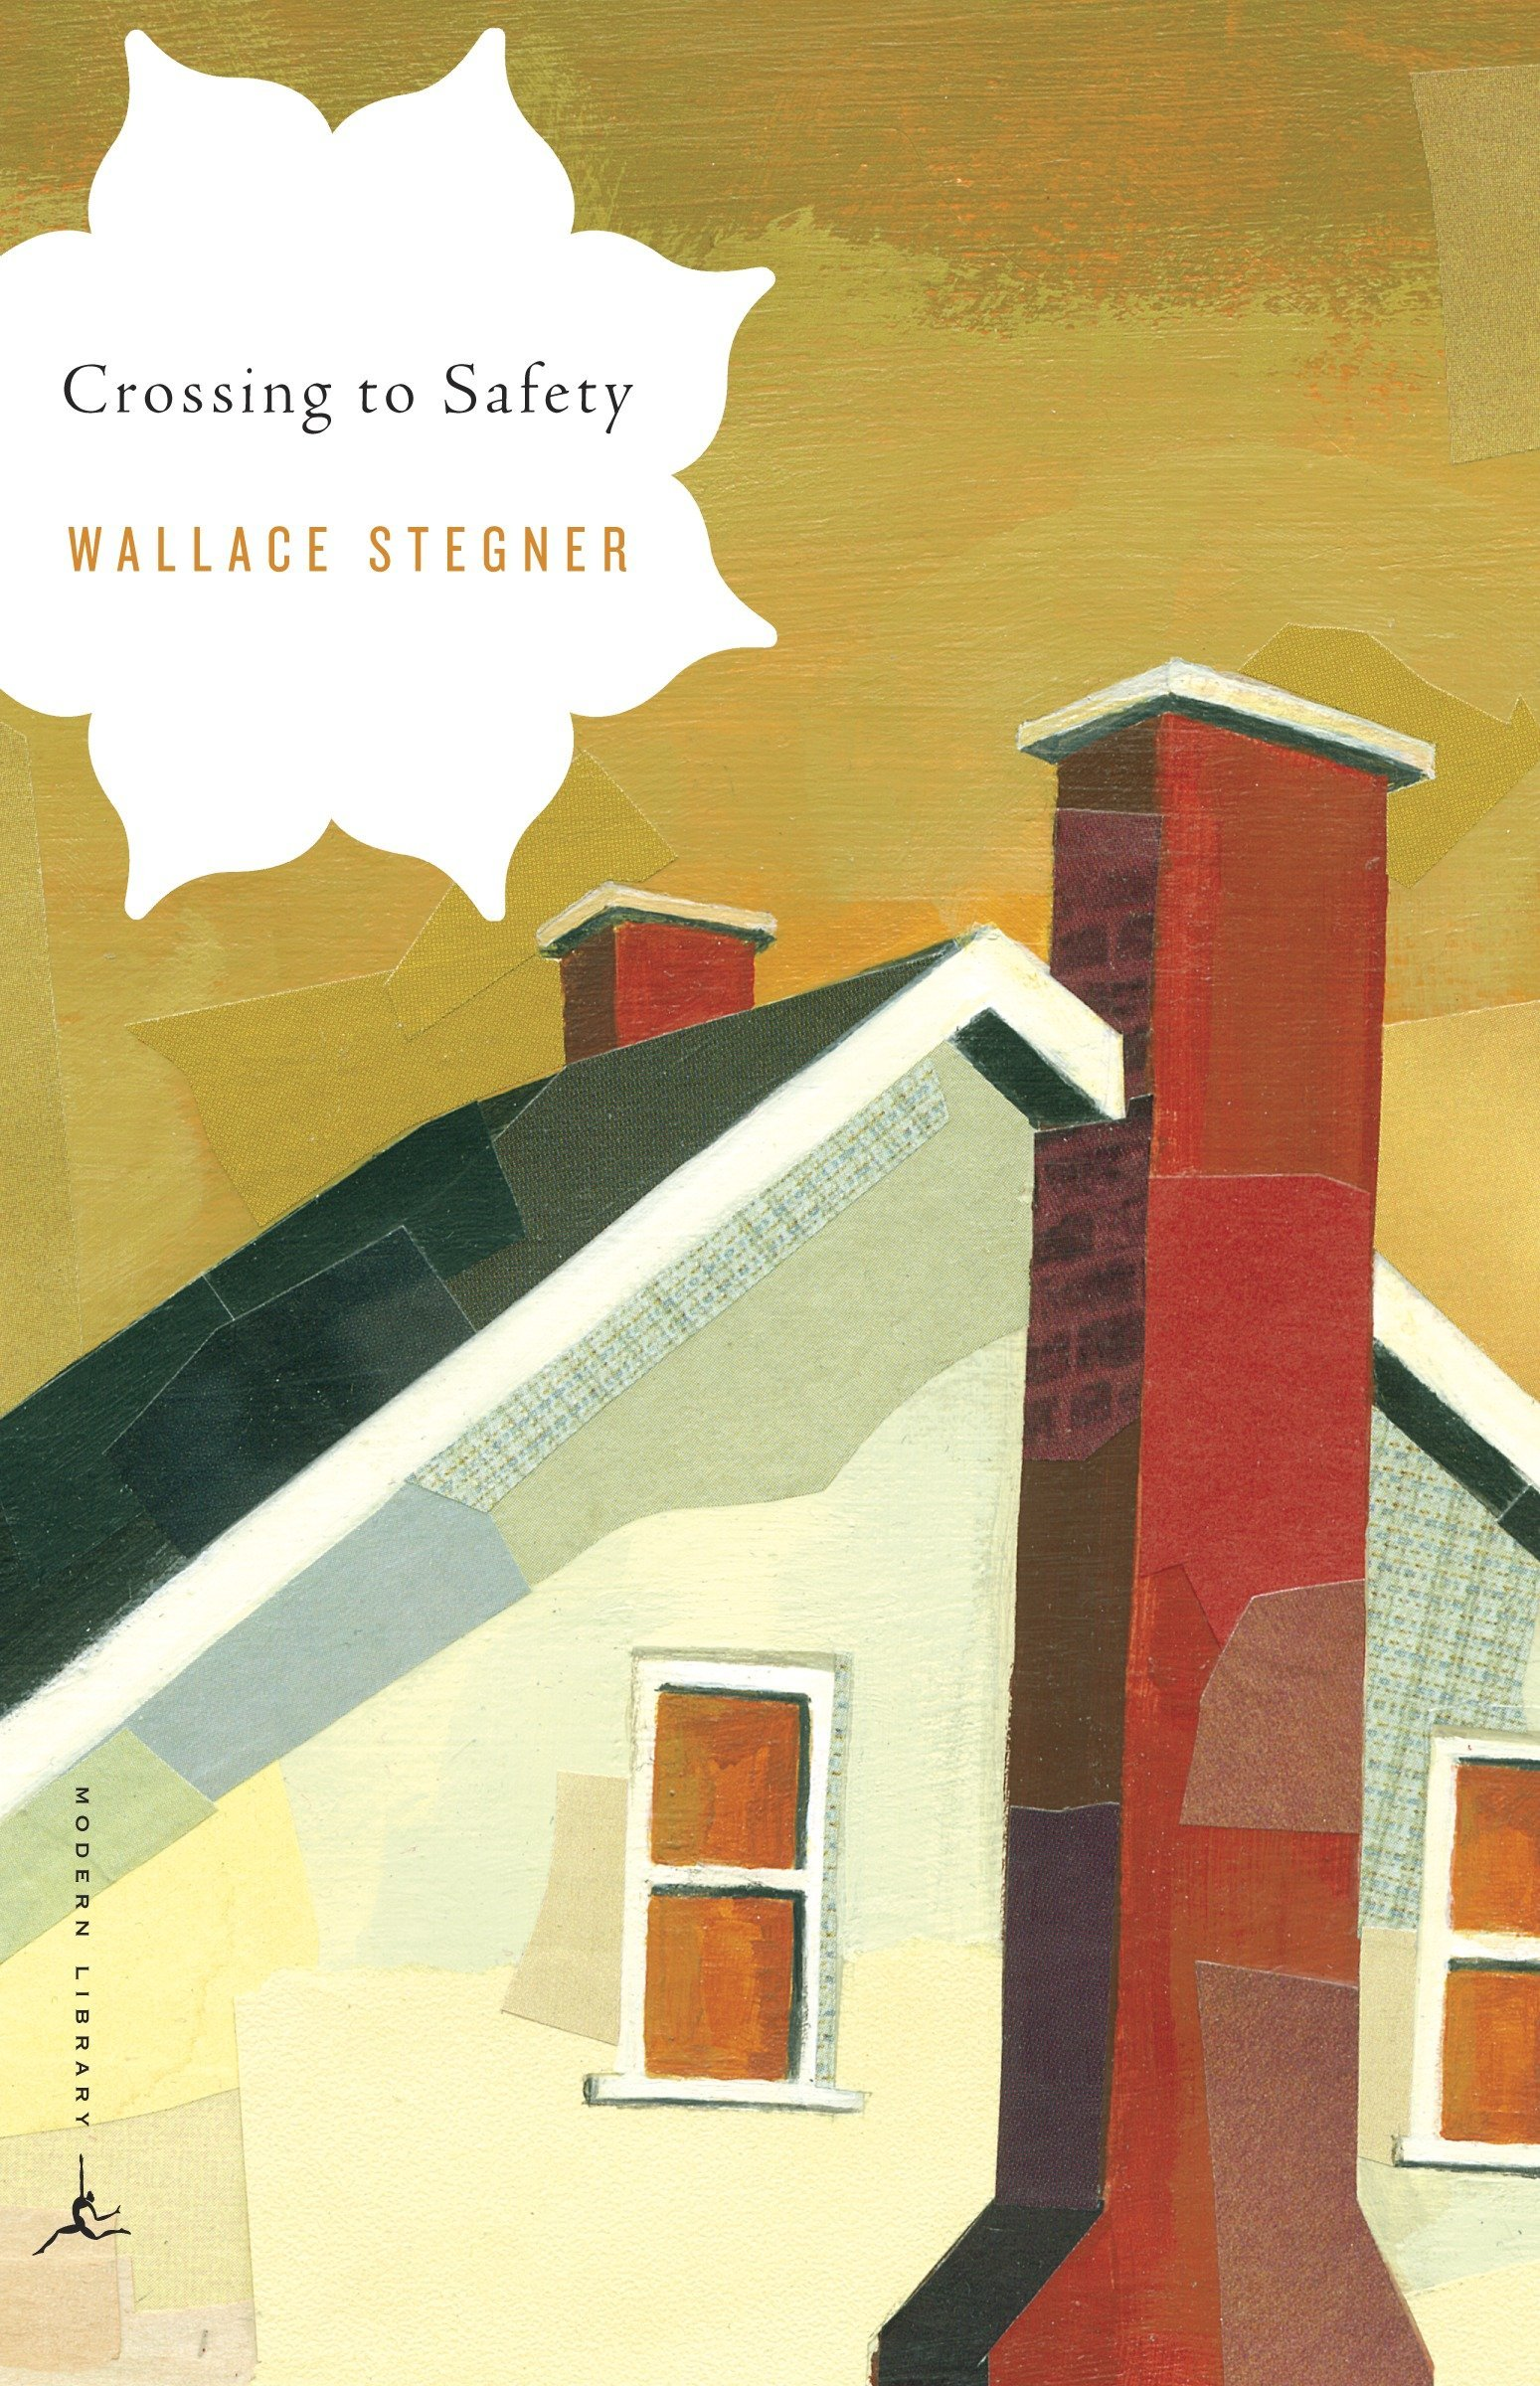 Crossing to Safety by Wallace Stegner.